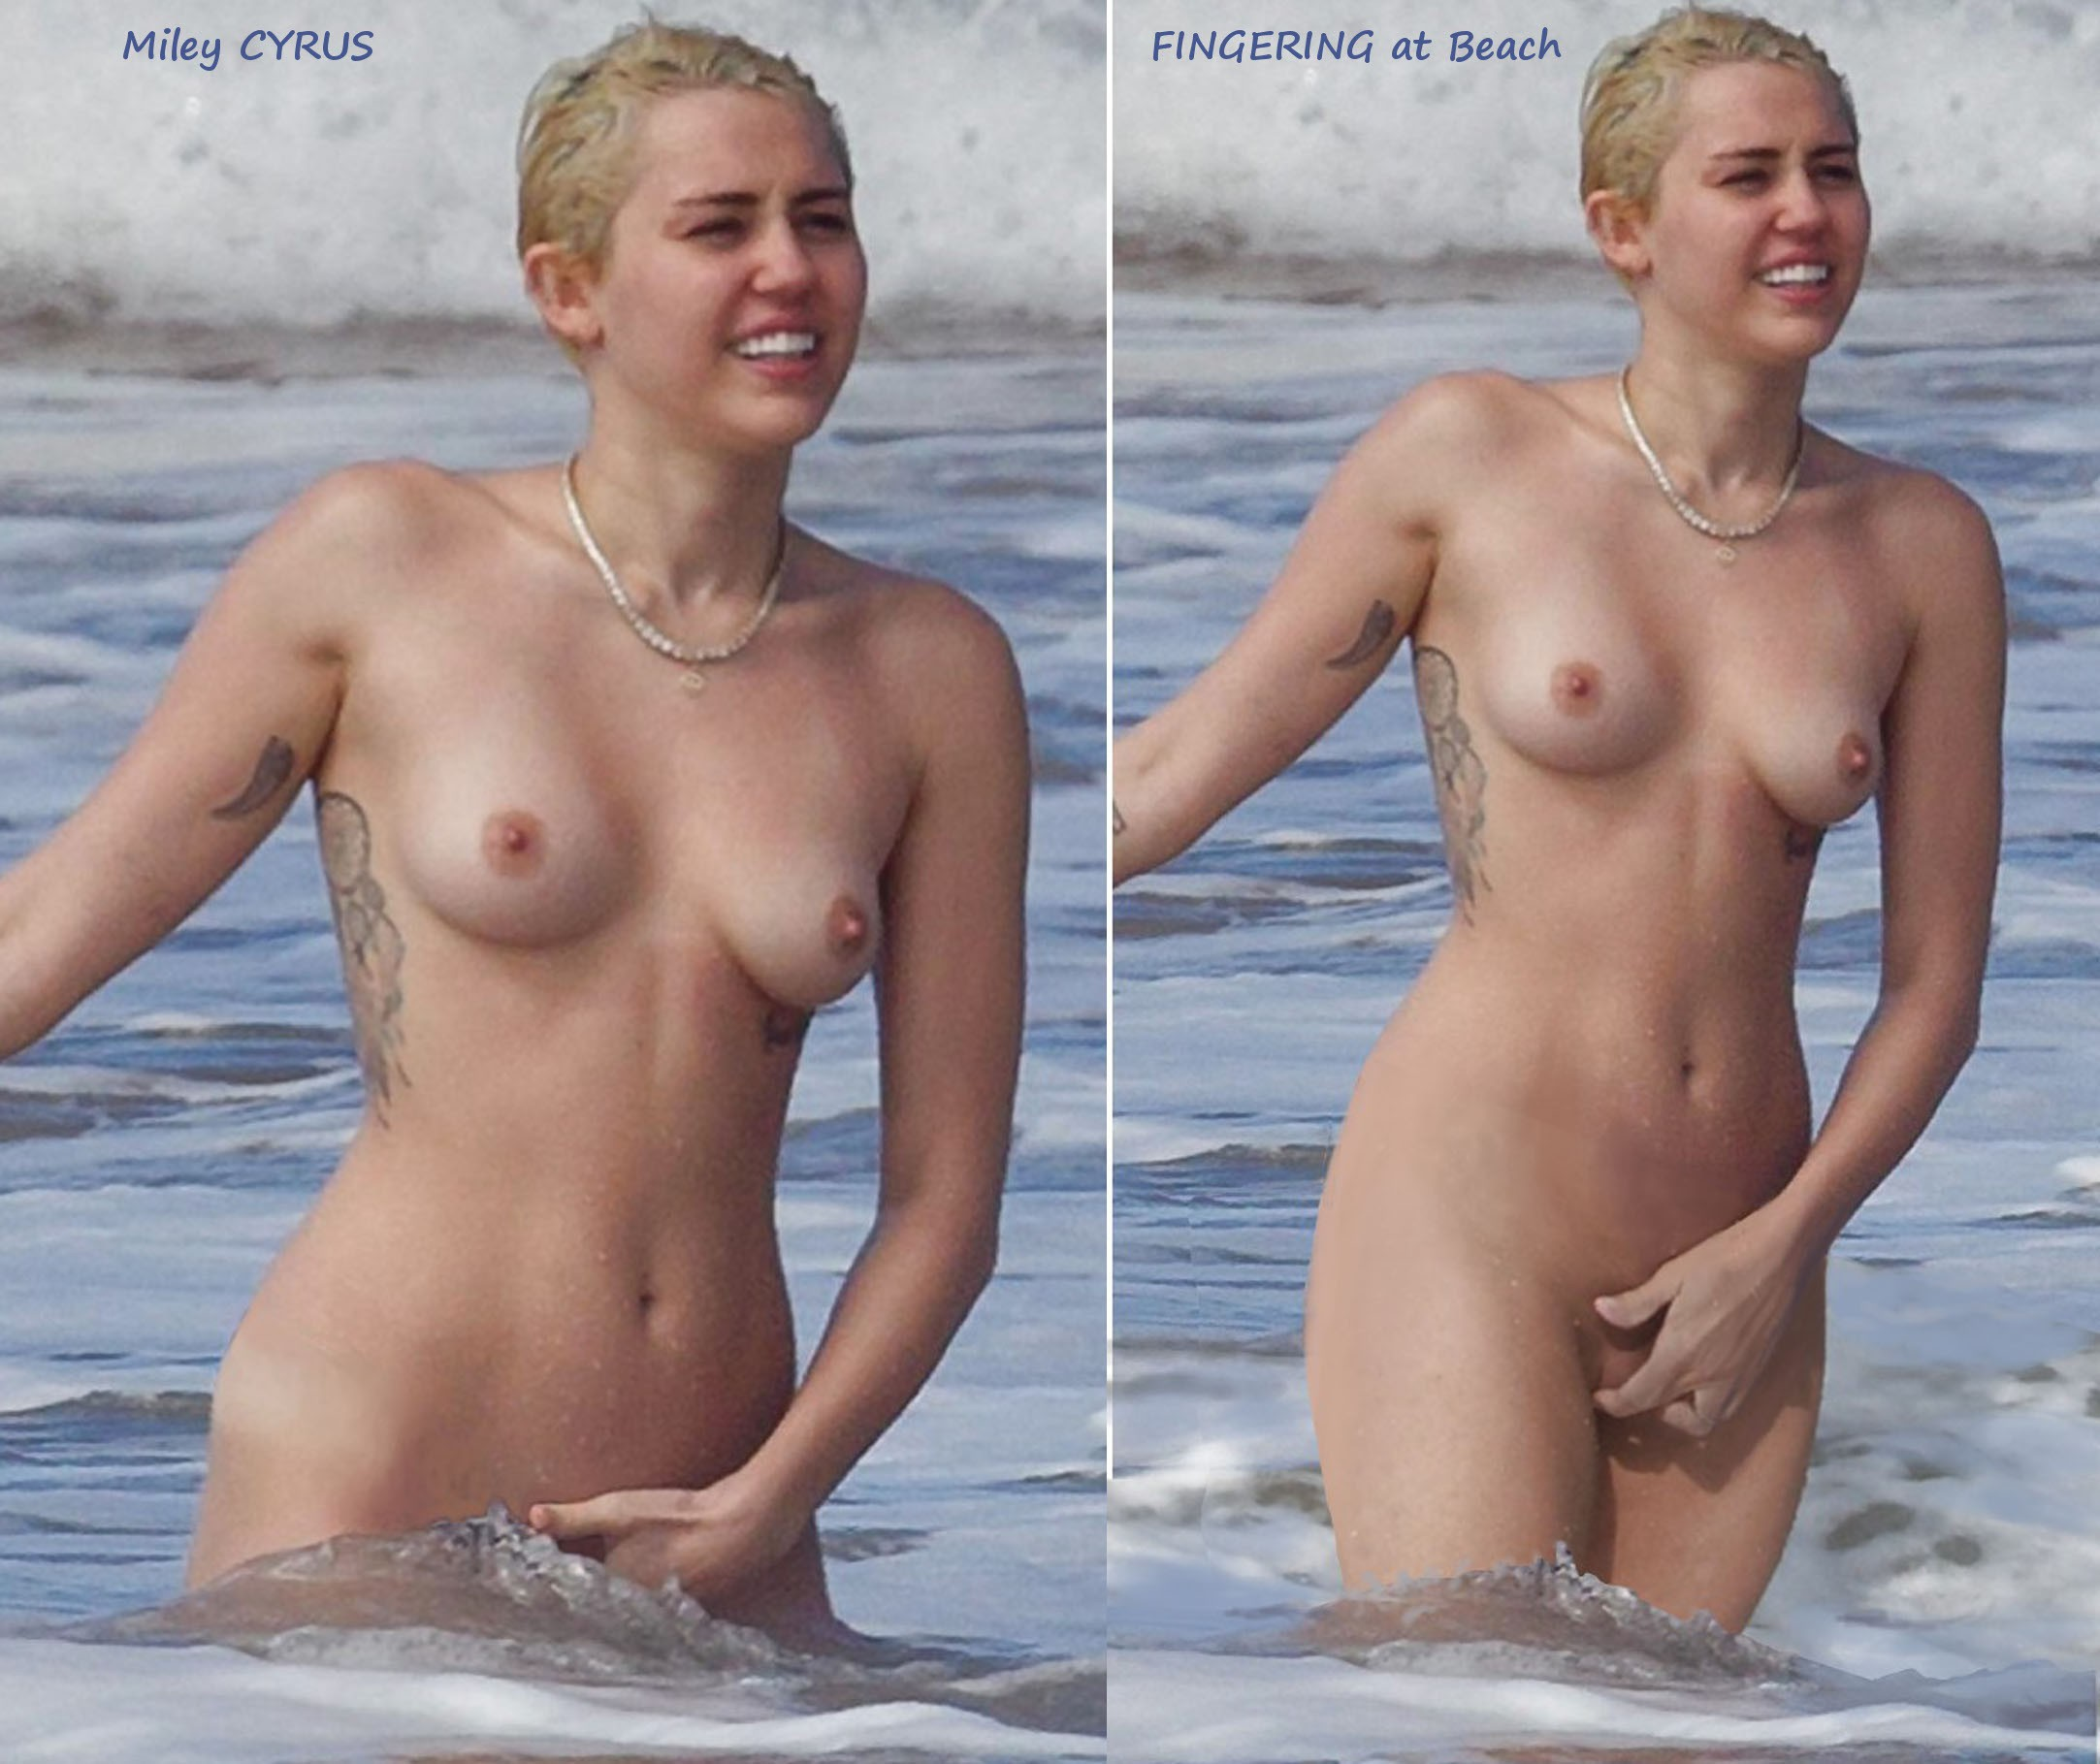 miley-cyrus-photos-naked-gallery